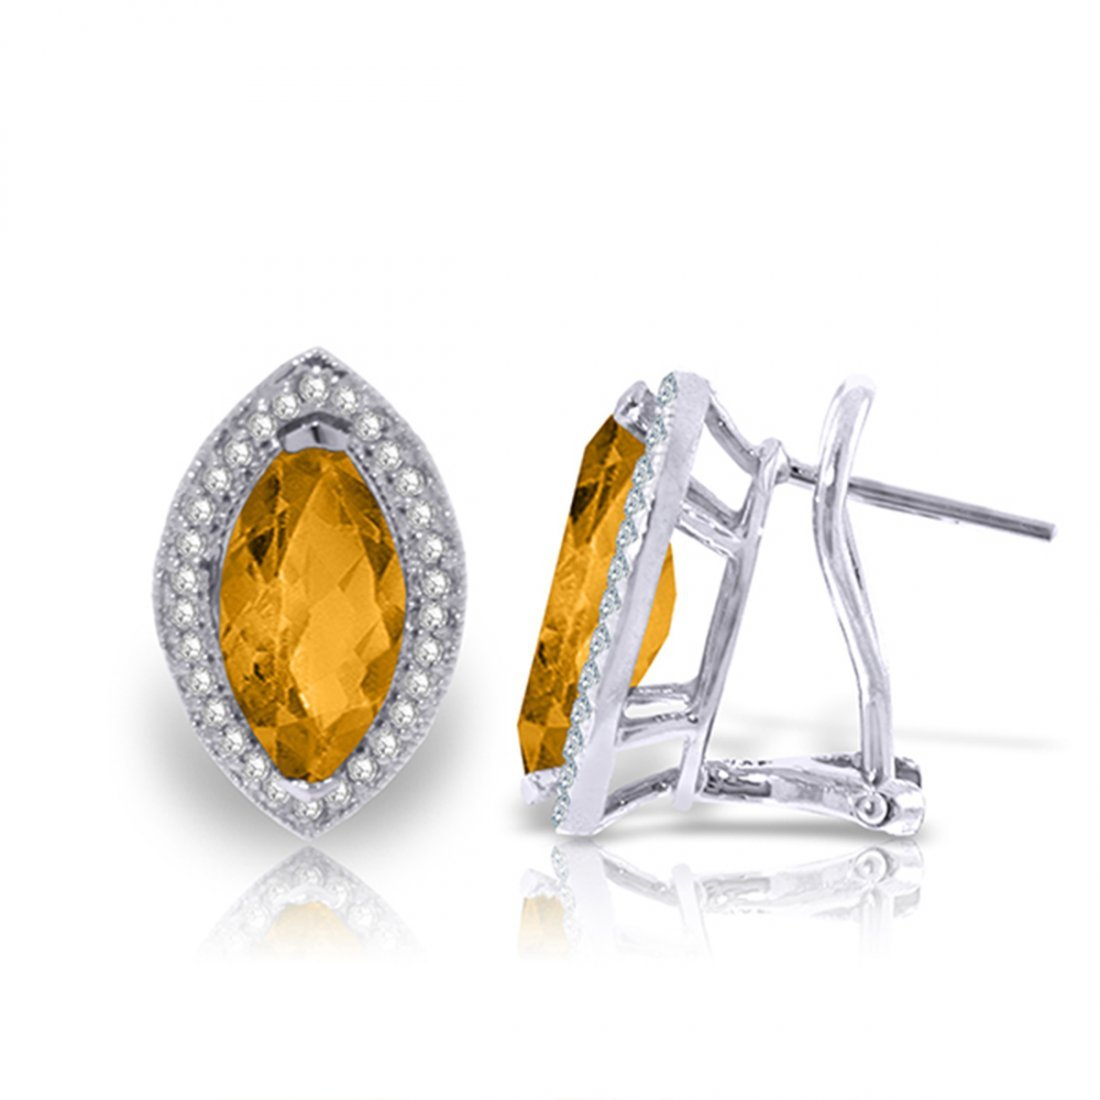 3.6ct 14k White Gold Hayworth Citrine Diamond Earrings